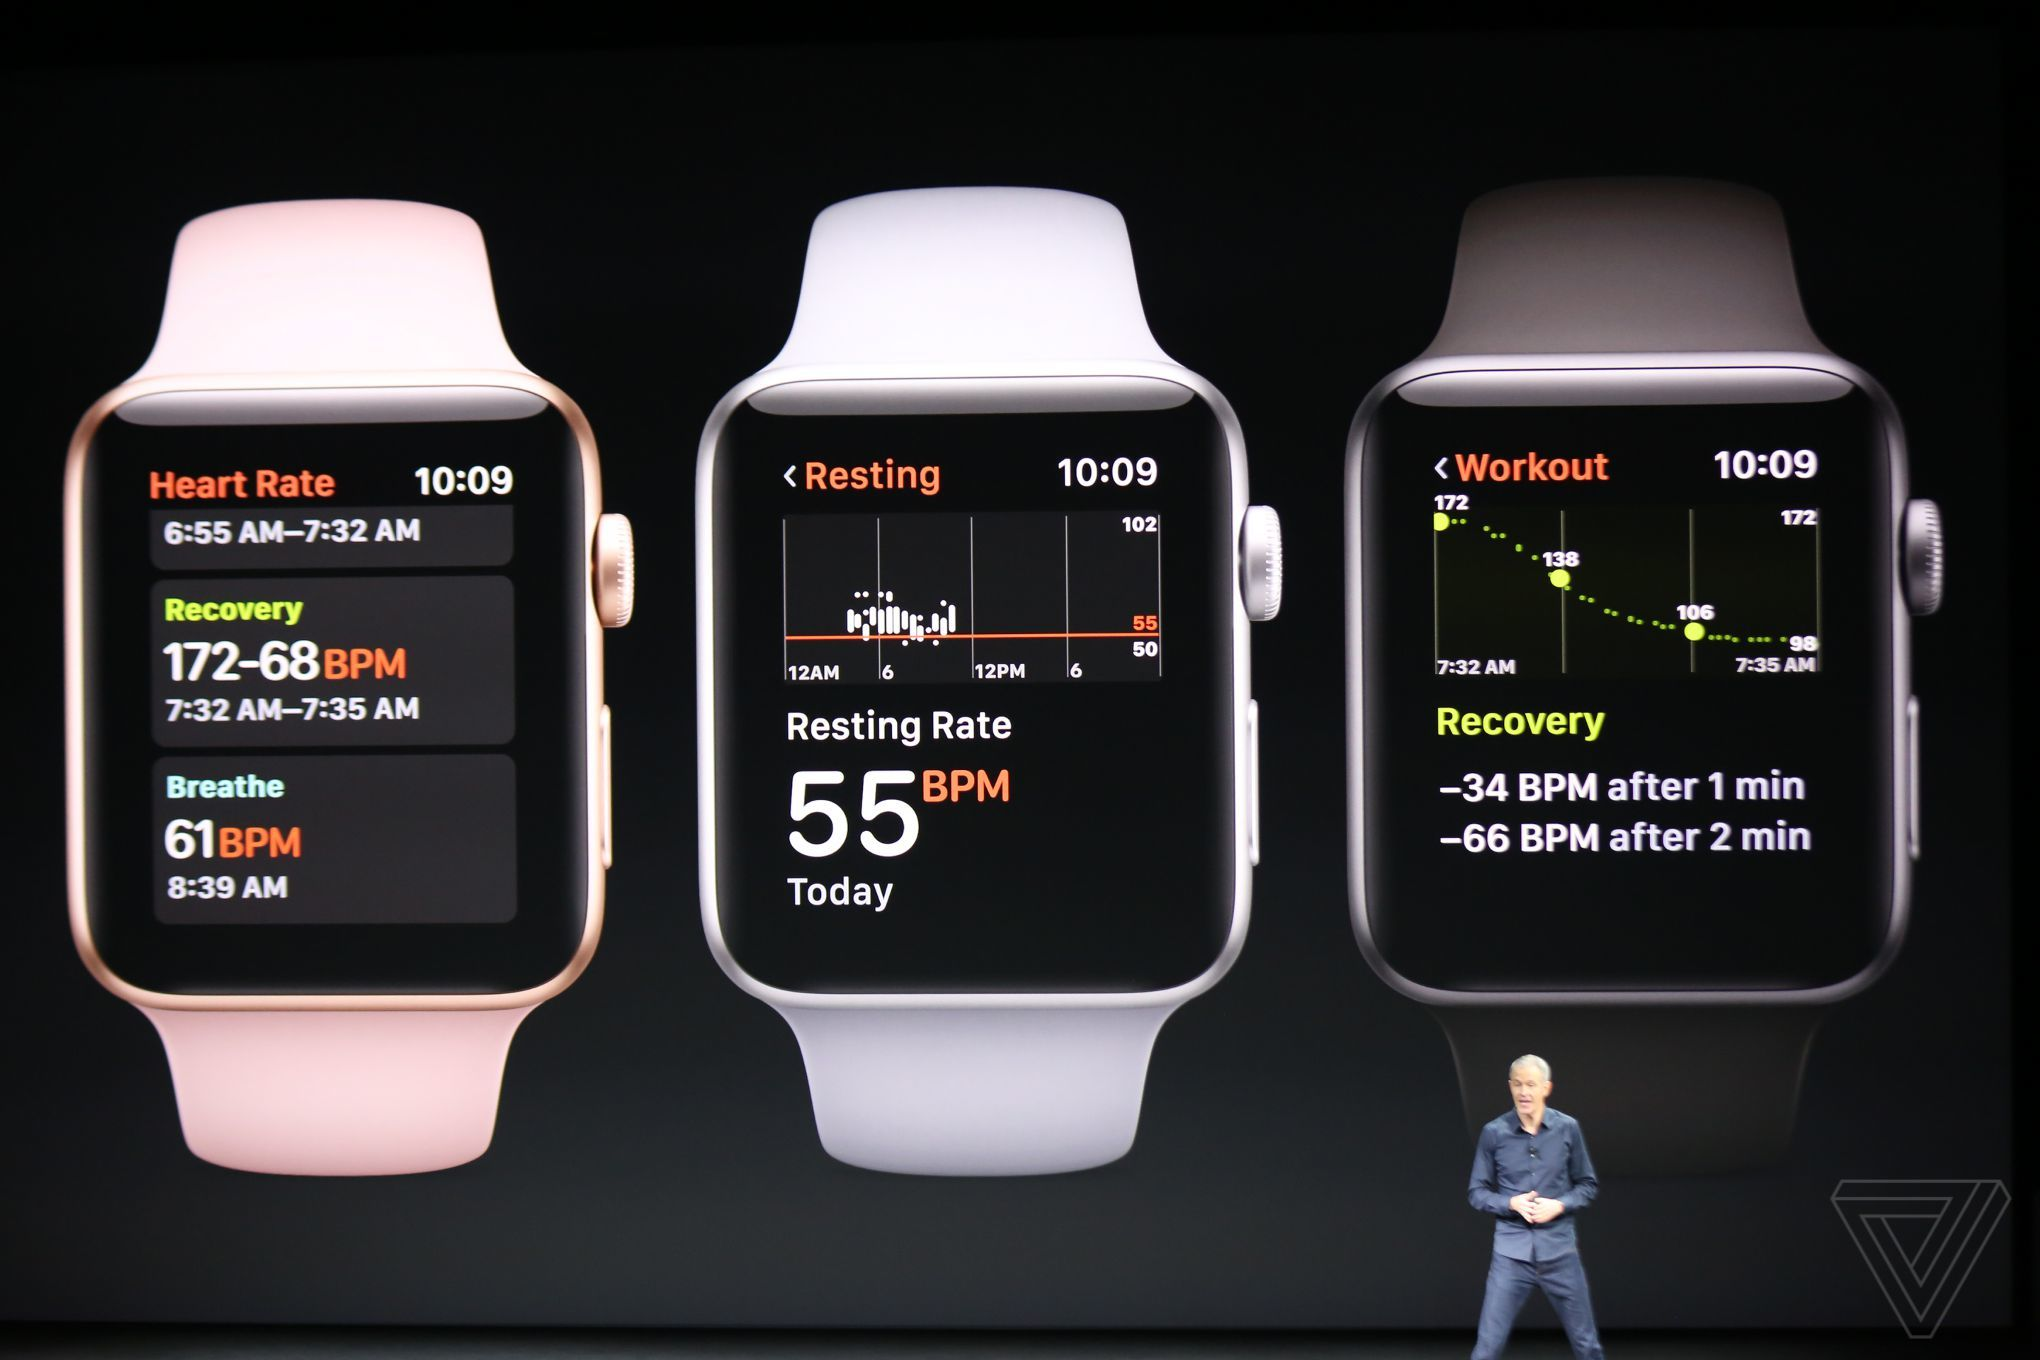 Apple Watch 7 New Apple Watch 3 Series